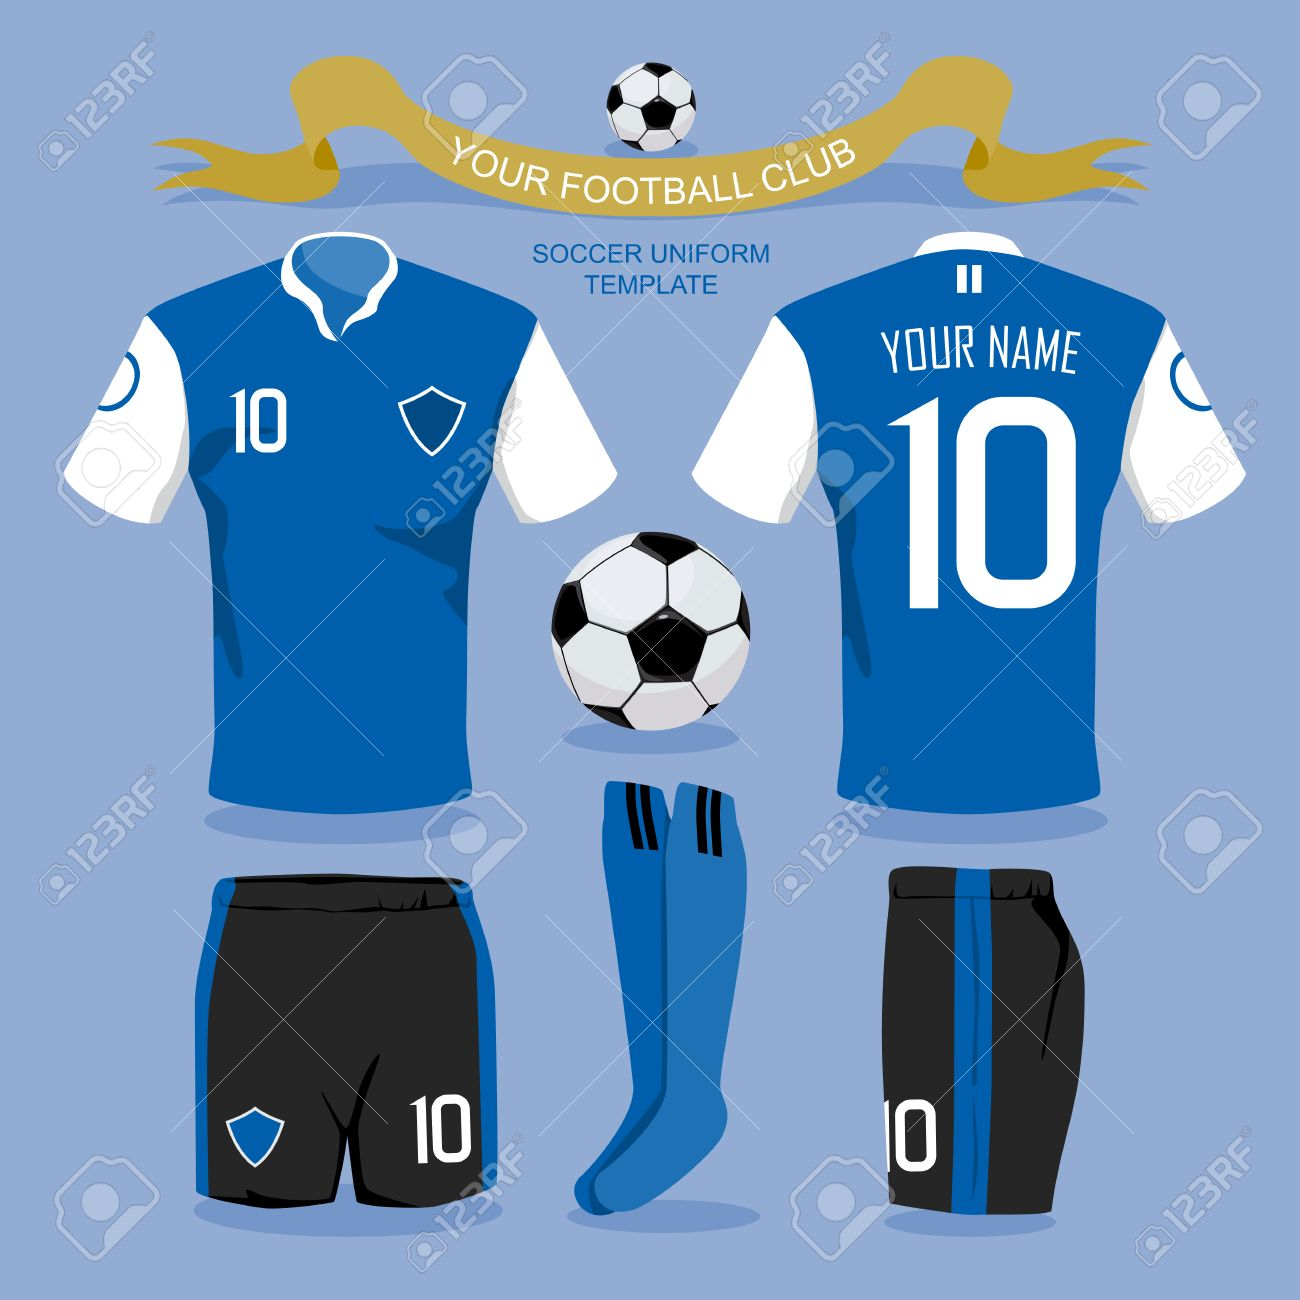 soccer uniform template for your football club illustration